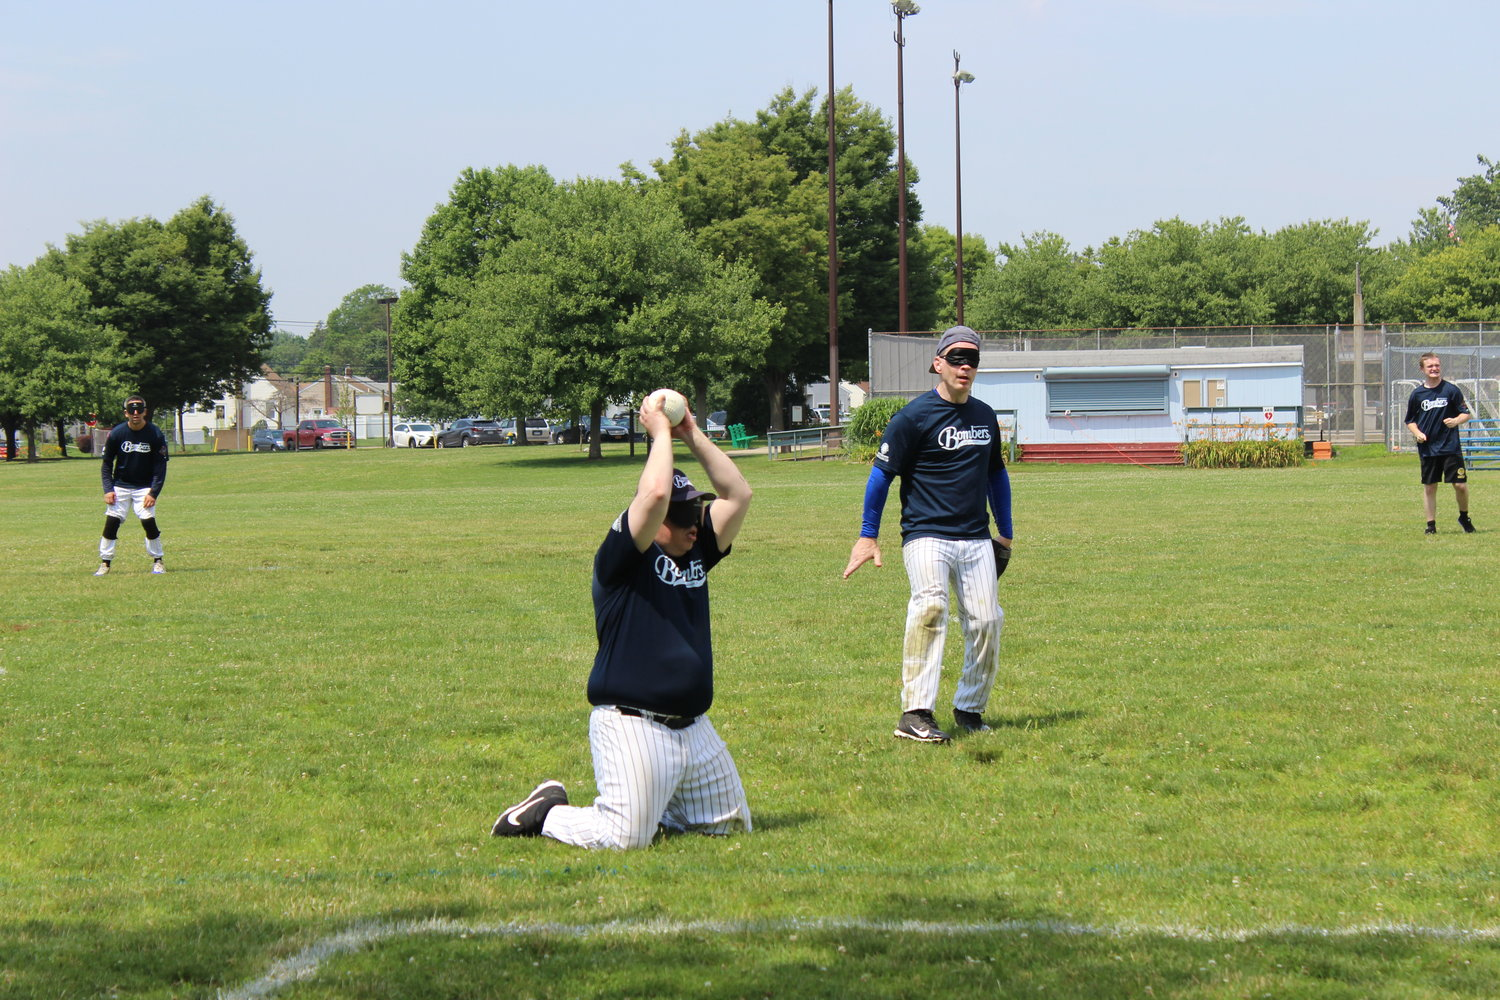 The Long Island Bombers beep baseball team hosted the annual Long Island Classic tournament at Senator Speno Memorial Park on June 29. Above, Edgar Erickson, of Manhattan, recorded an out by grabbing the ball before the batter reached base.